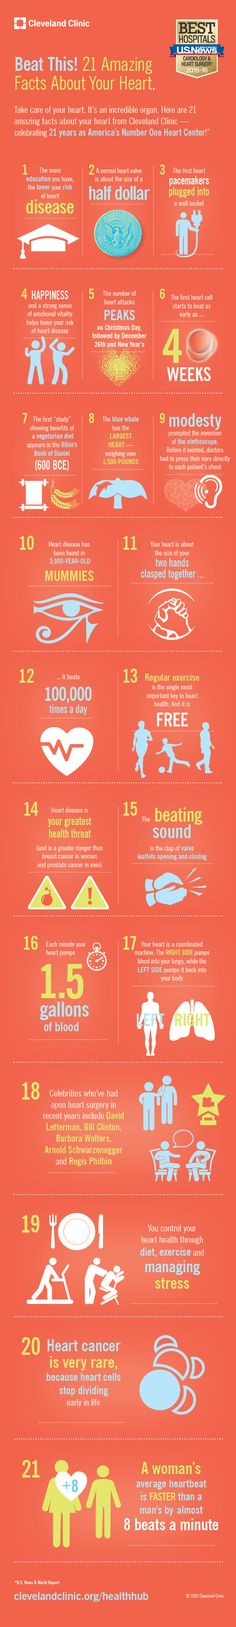 21 Amazing Facts About Your #Heart. #infographic